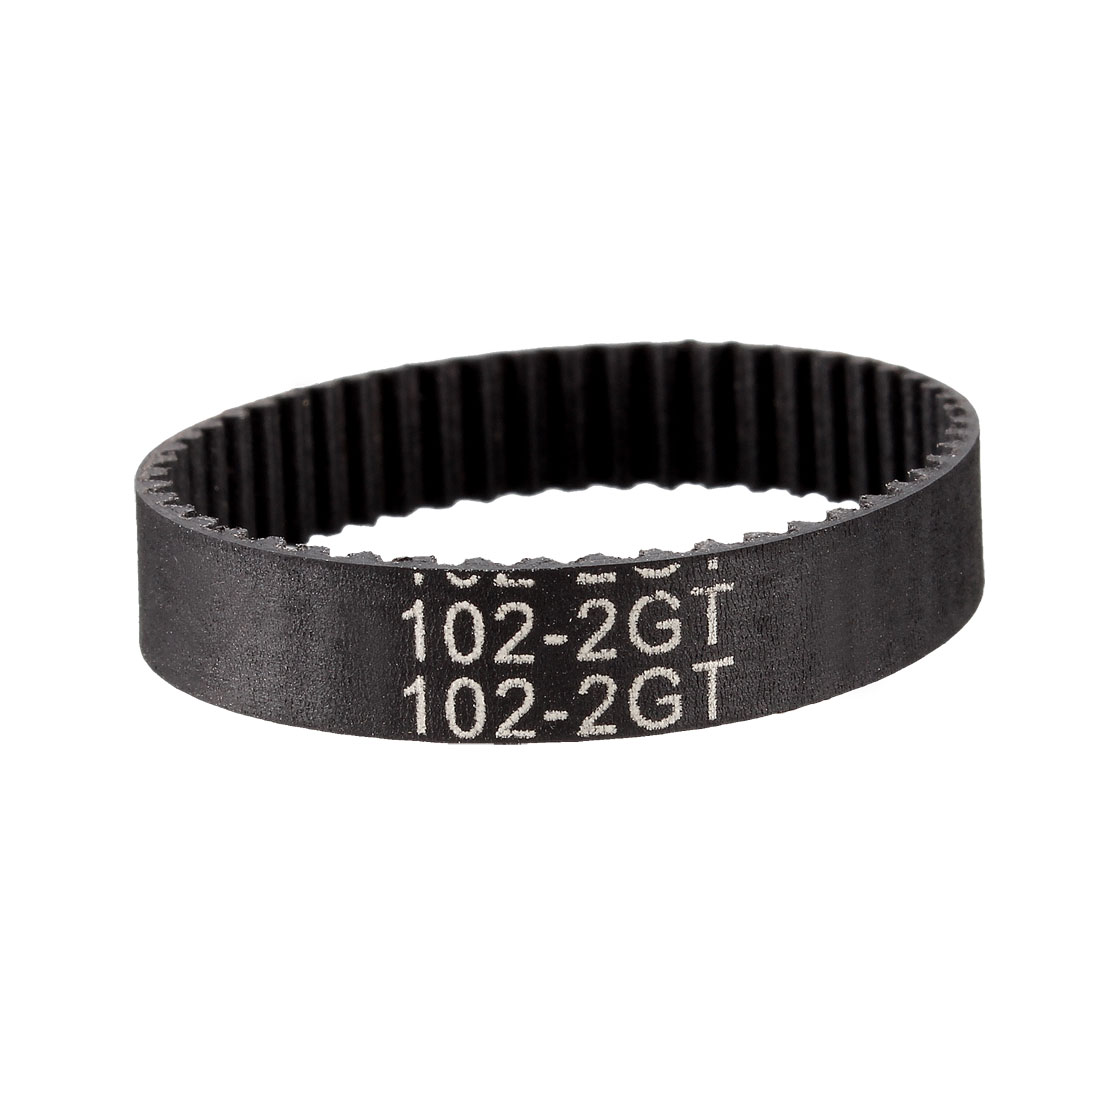 GT2 Timing Belt 102mm Closed Fit Synchronous Wheel for 3D Printer